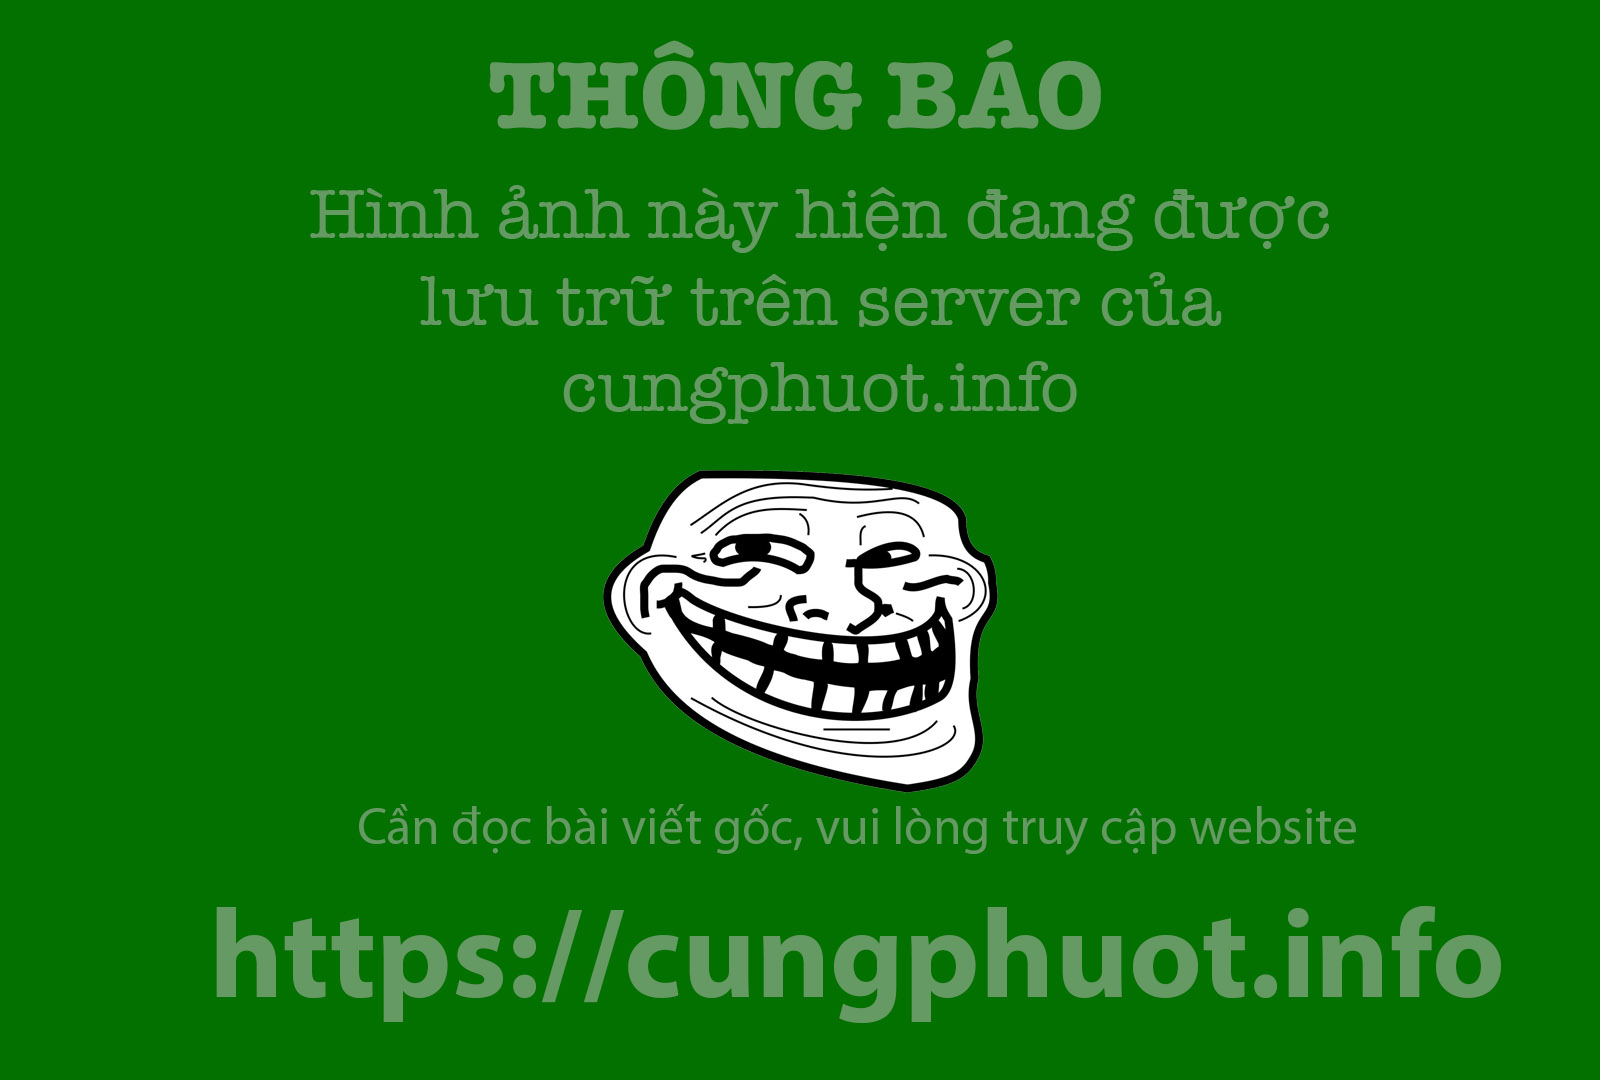 9 cung duong deo hung vi khien tin do du lich muon chinh phuc hinh anh 5